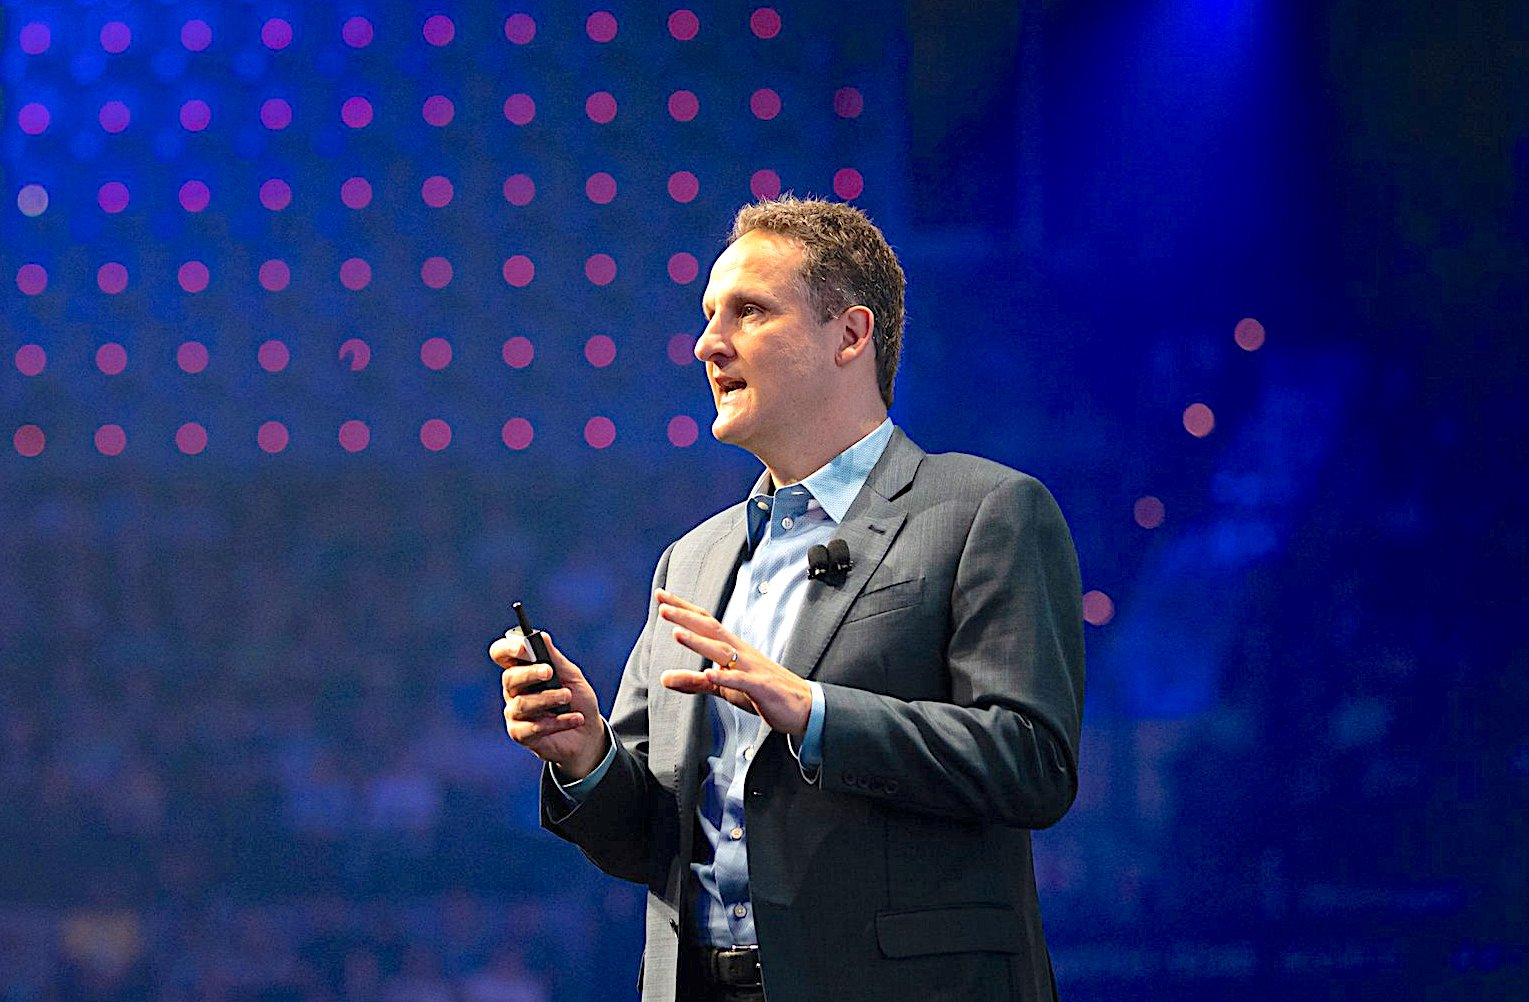 At Tableau Conference, AI drives the business intelligence experience but Salesforce integration remains AWOL